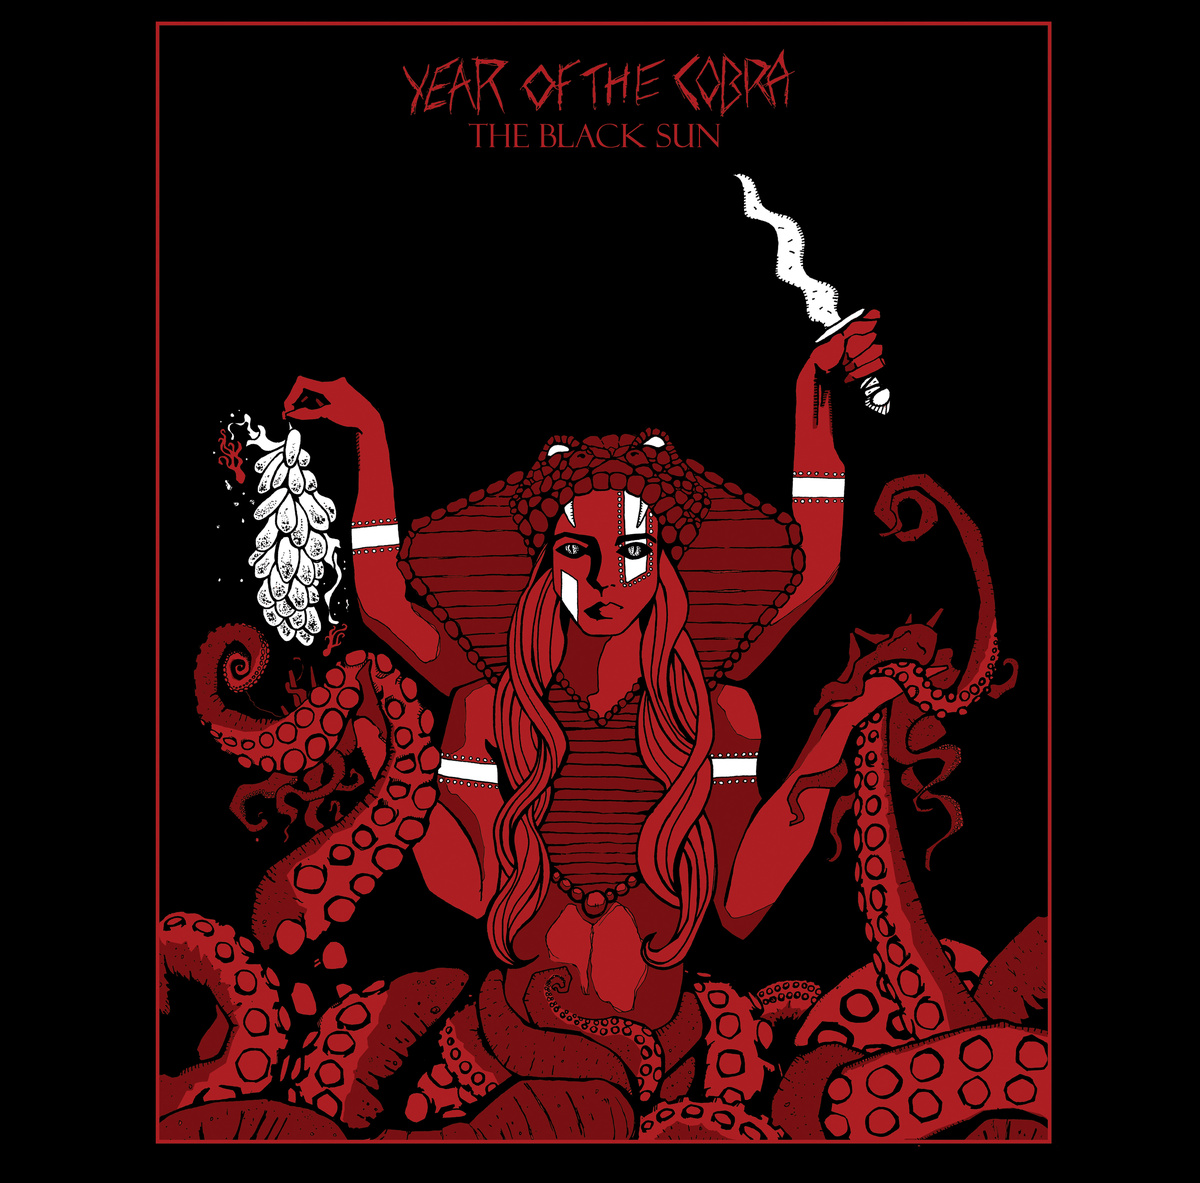 year of the cobra the black sun